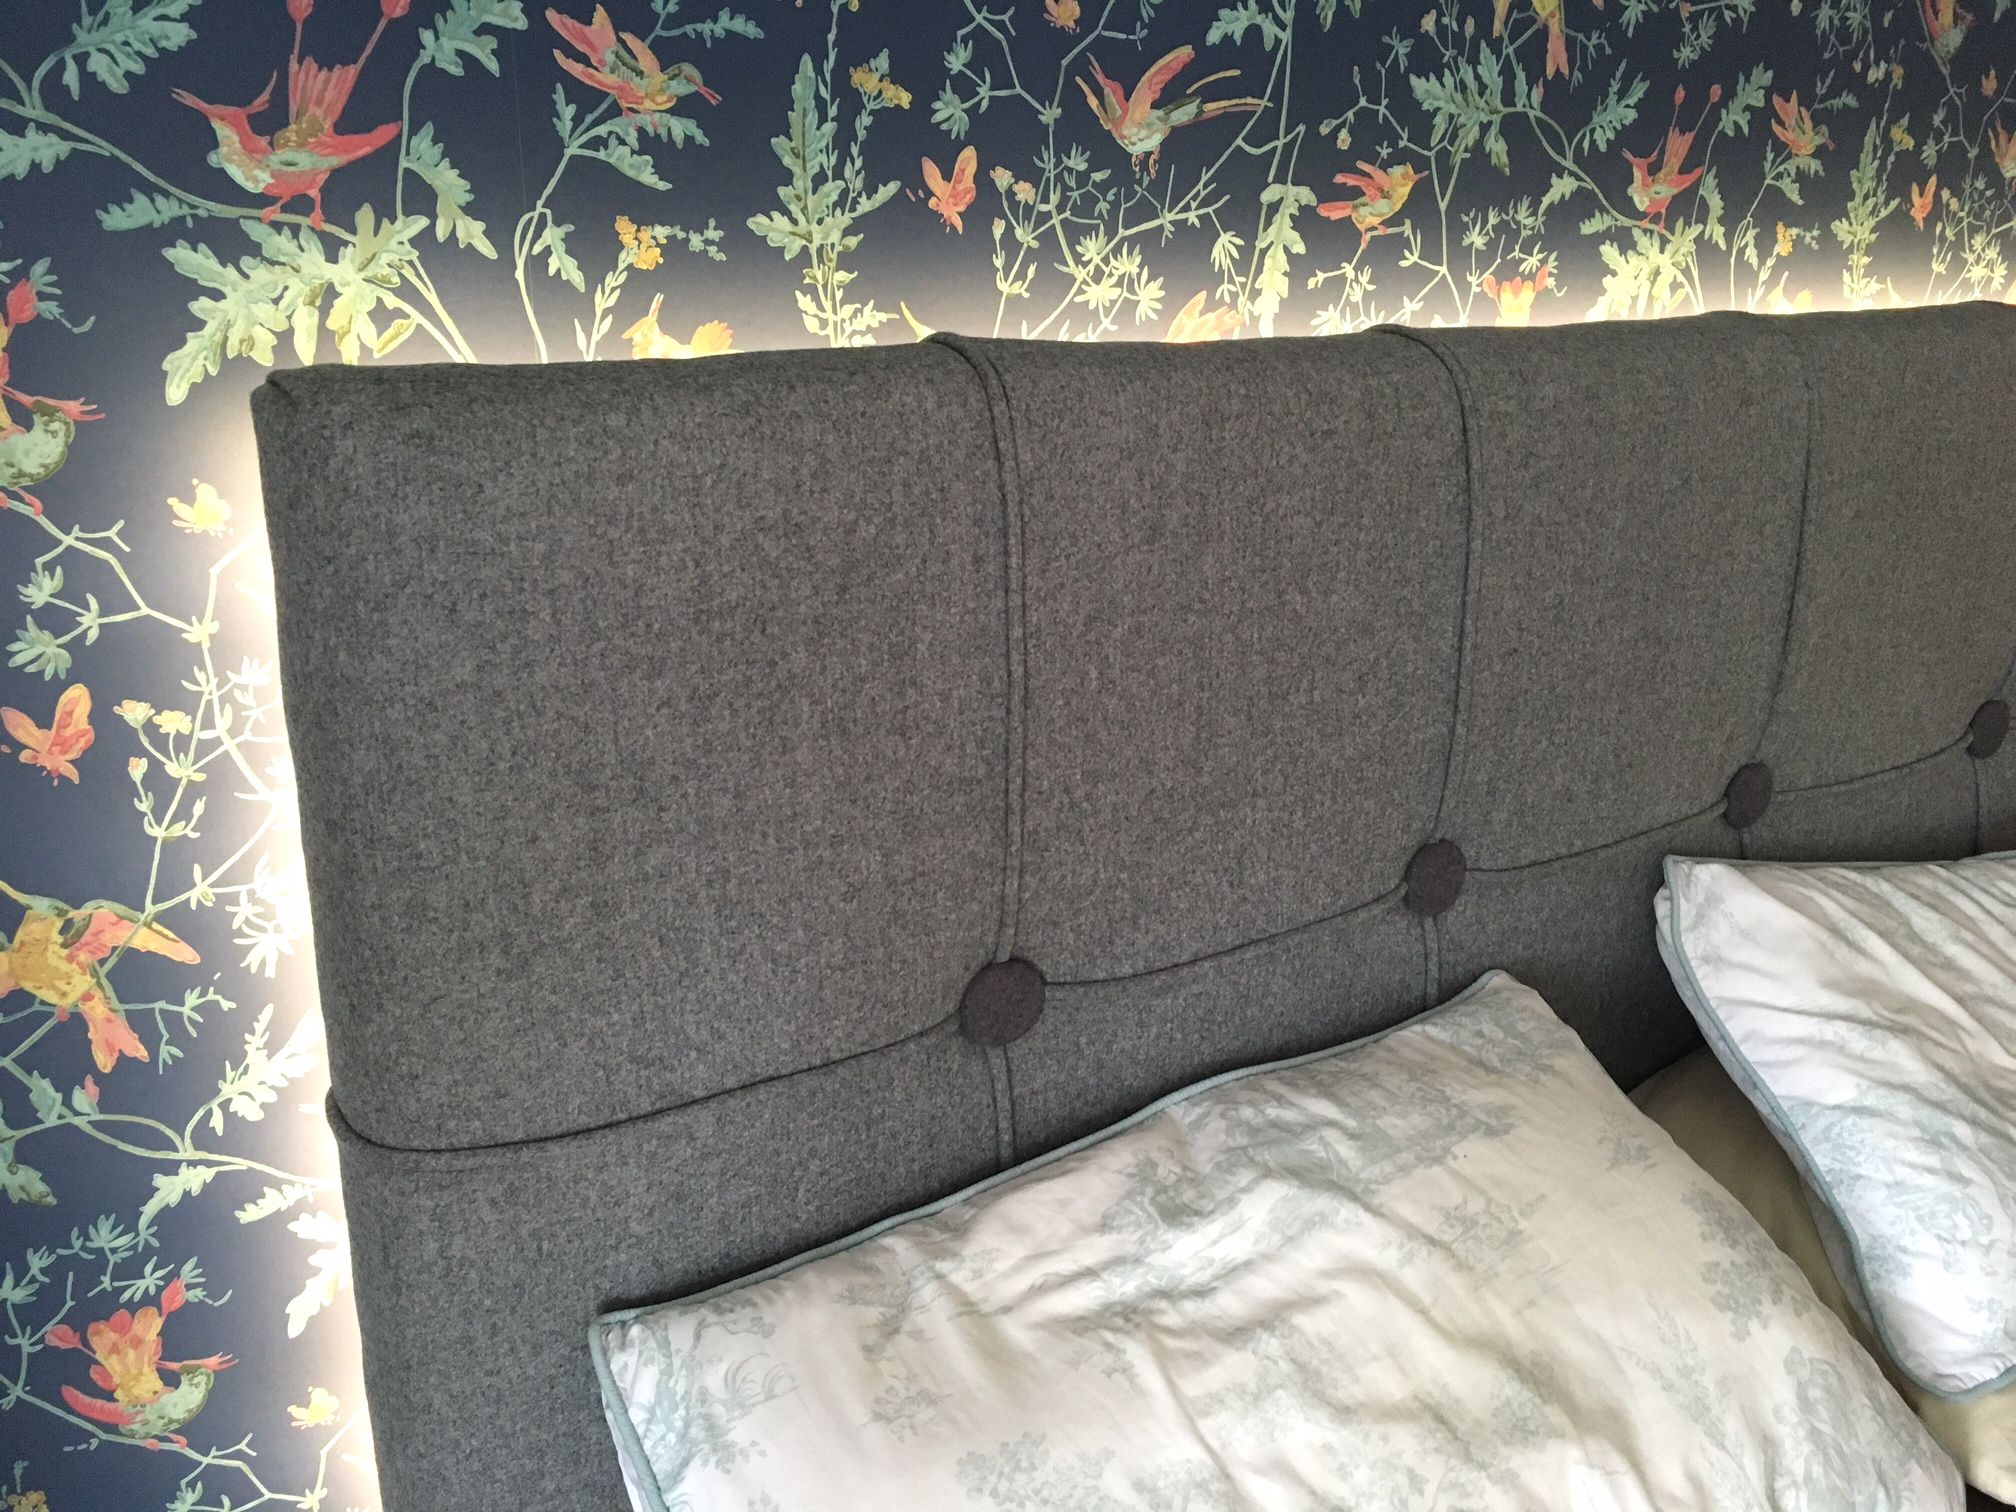 Make your own padded bed headboard with led lights interior design